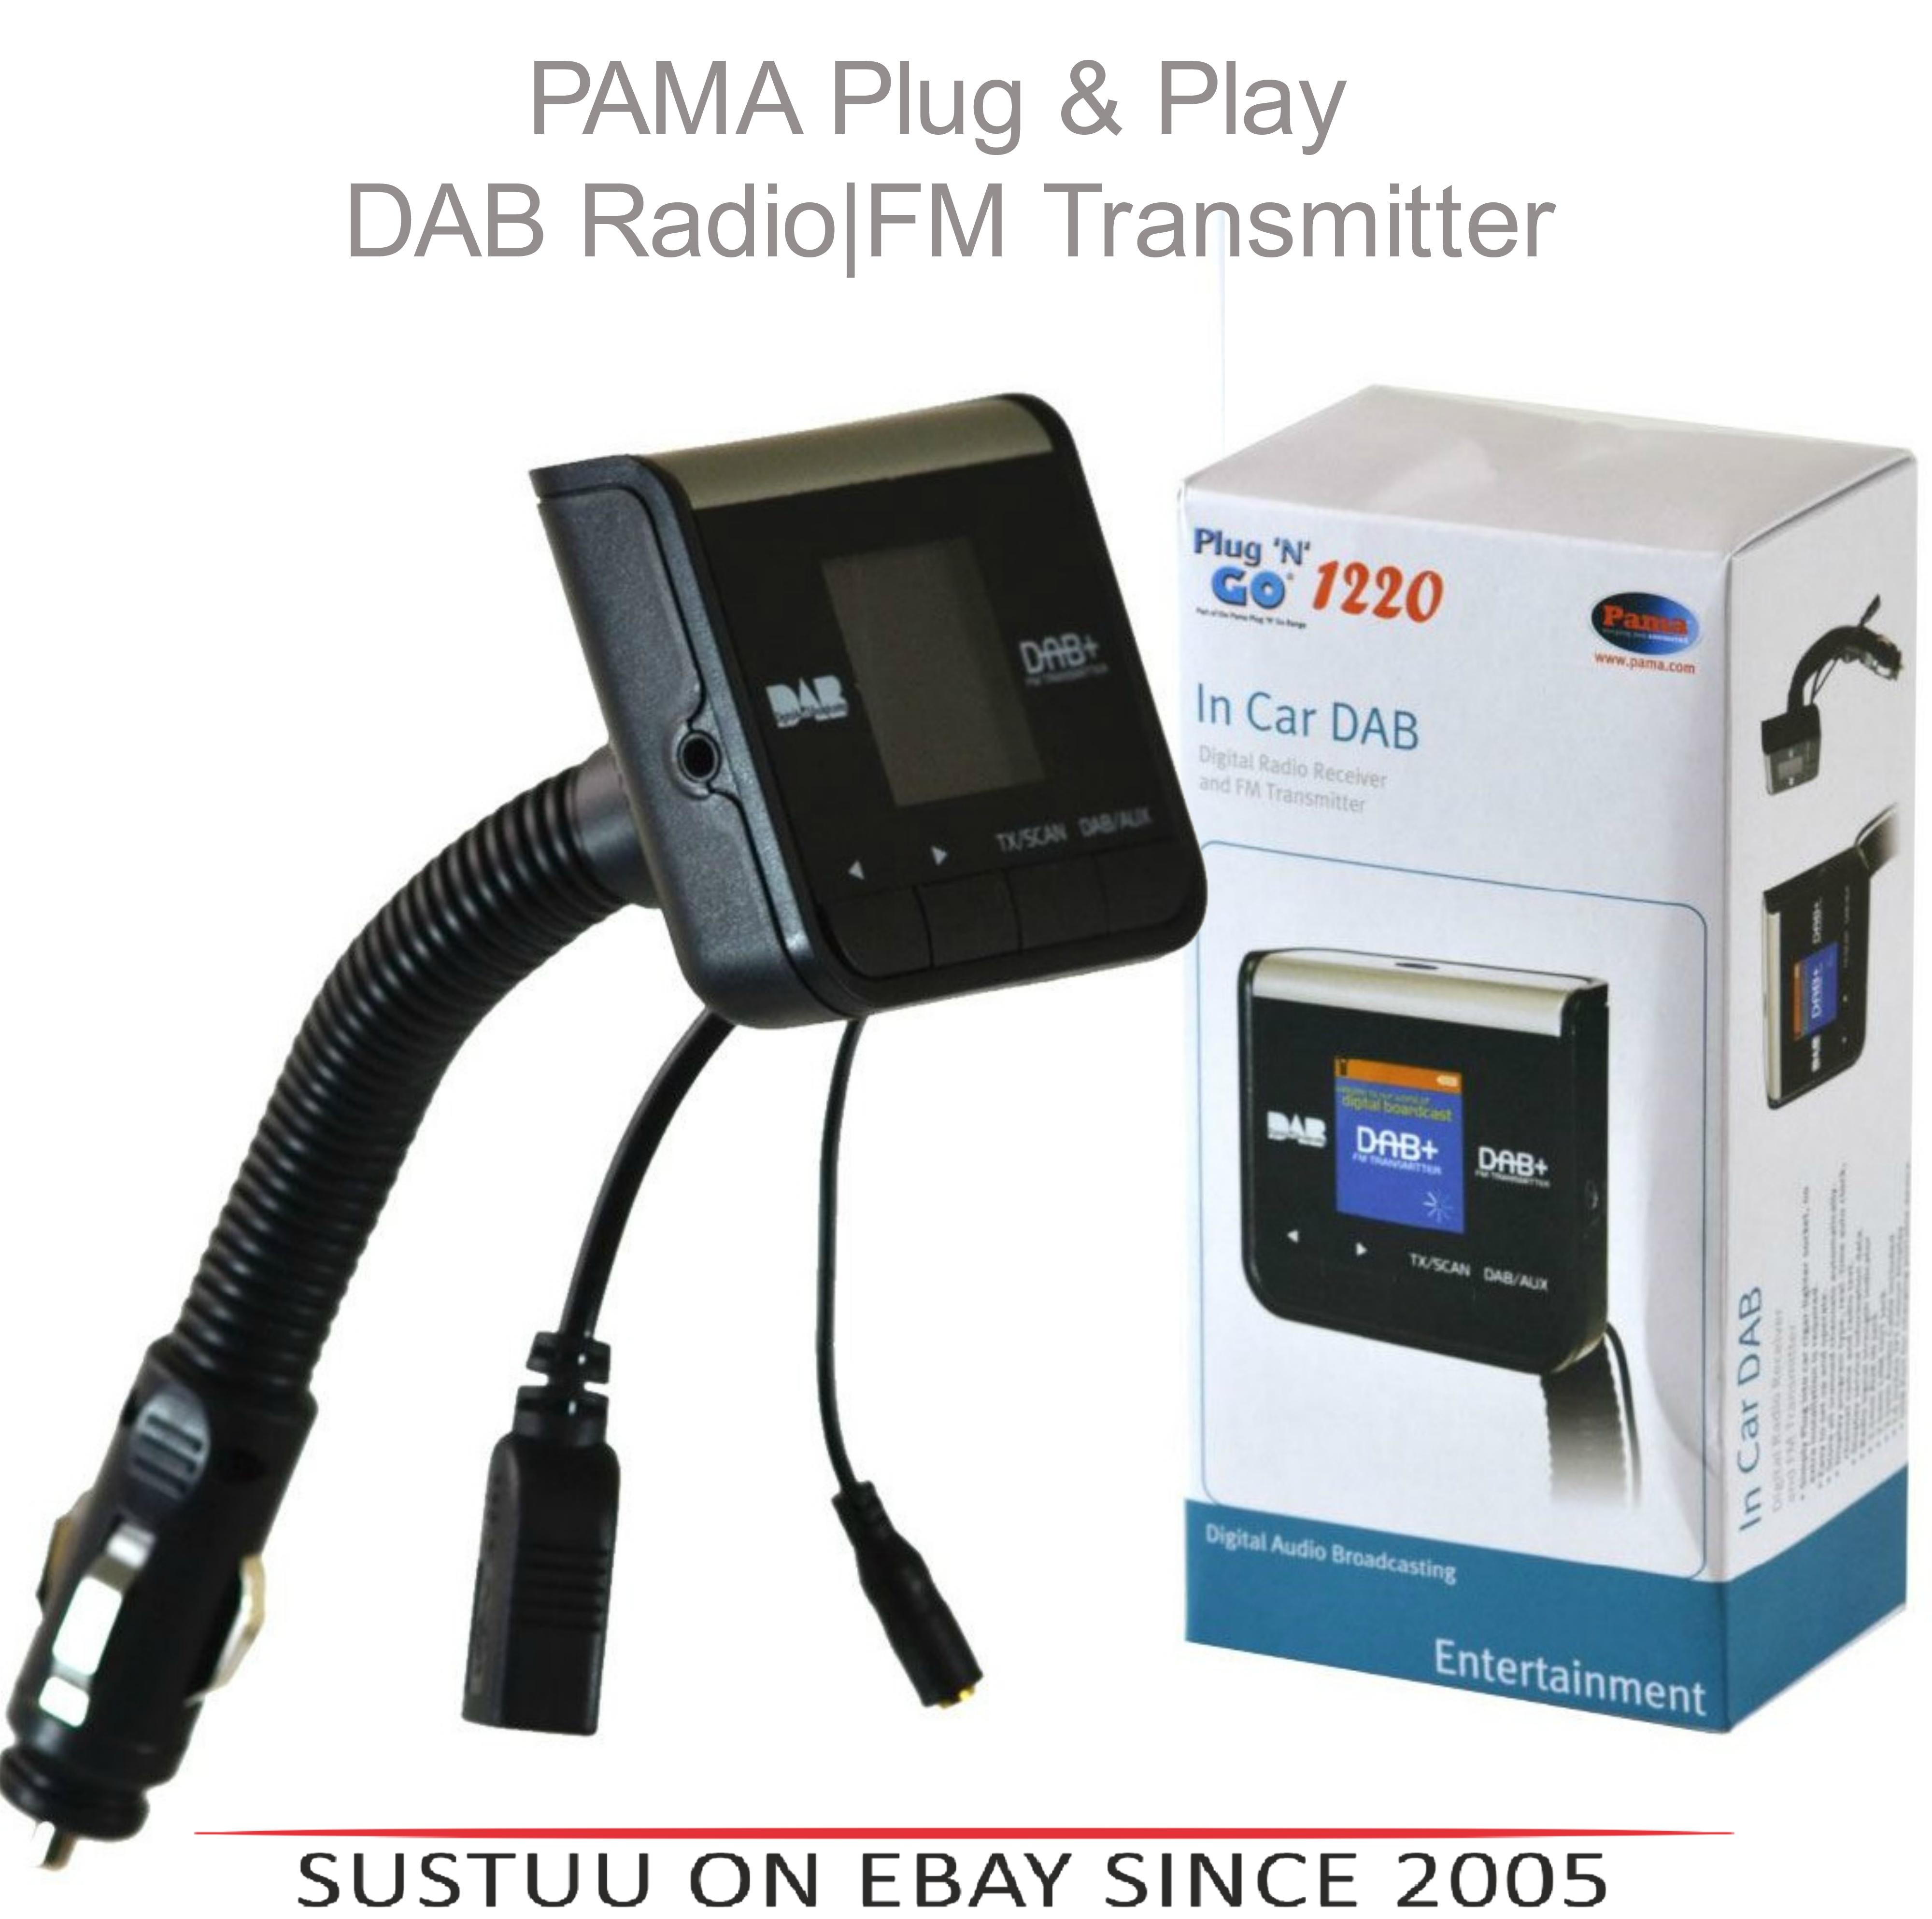 "Pama PNG1220 Car DAB Digital Plug & Go Radio|FM Transmitter|AUX IN|1.4"" Display"